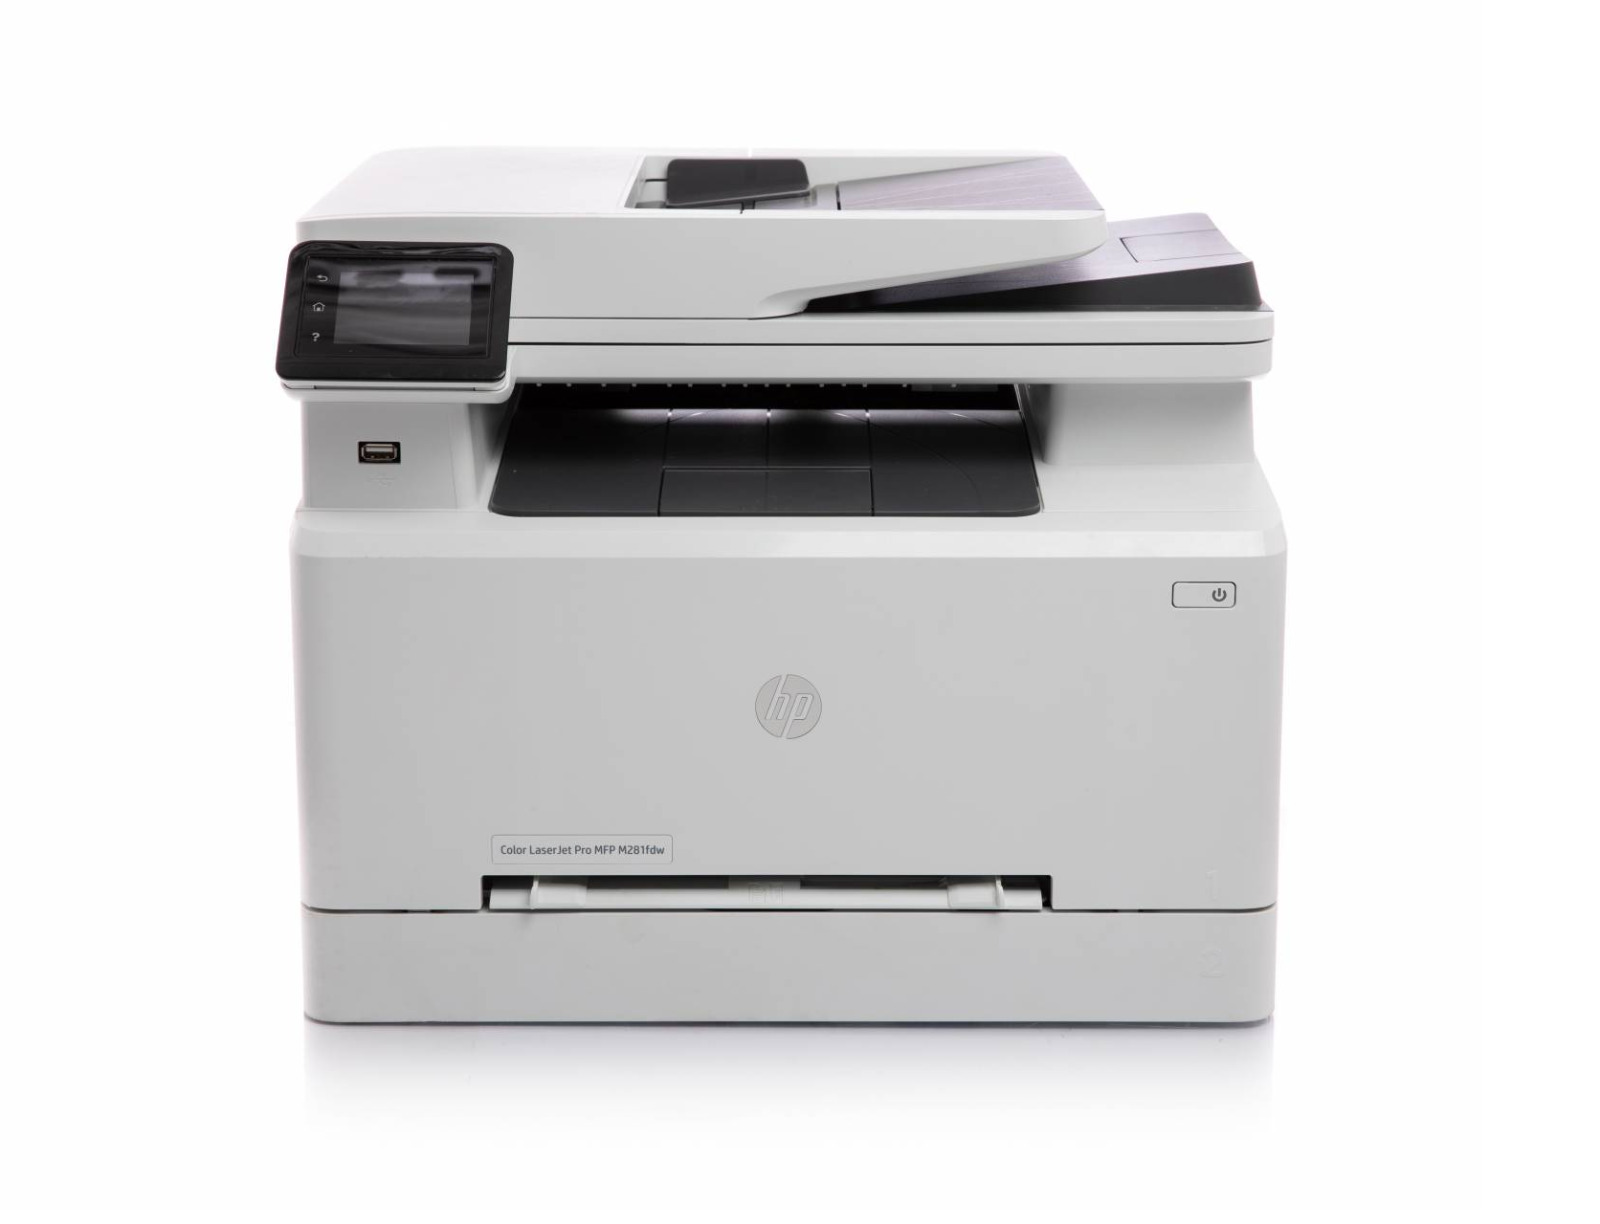 HP LaserJet Pro M281fdw All-in-One Wireless Color Laser Printer - White . Buy it now for 229.99